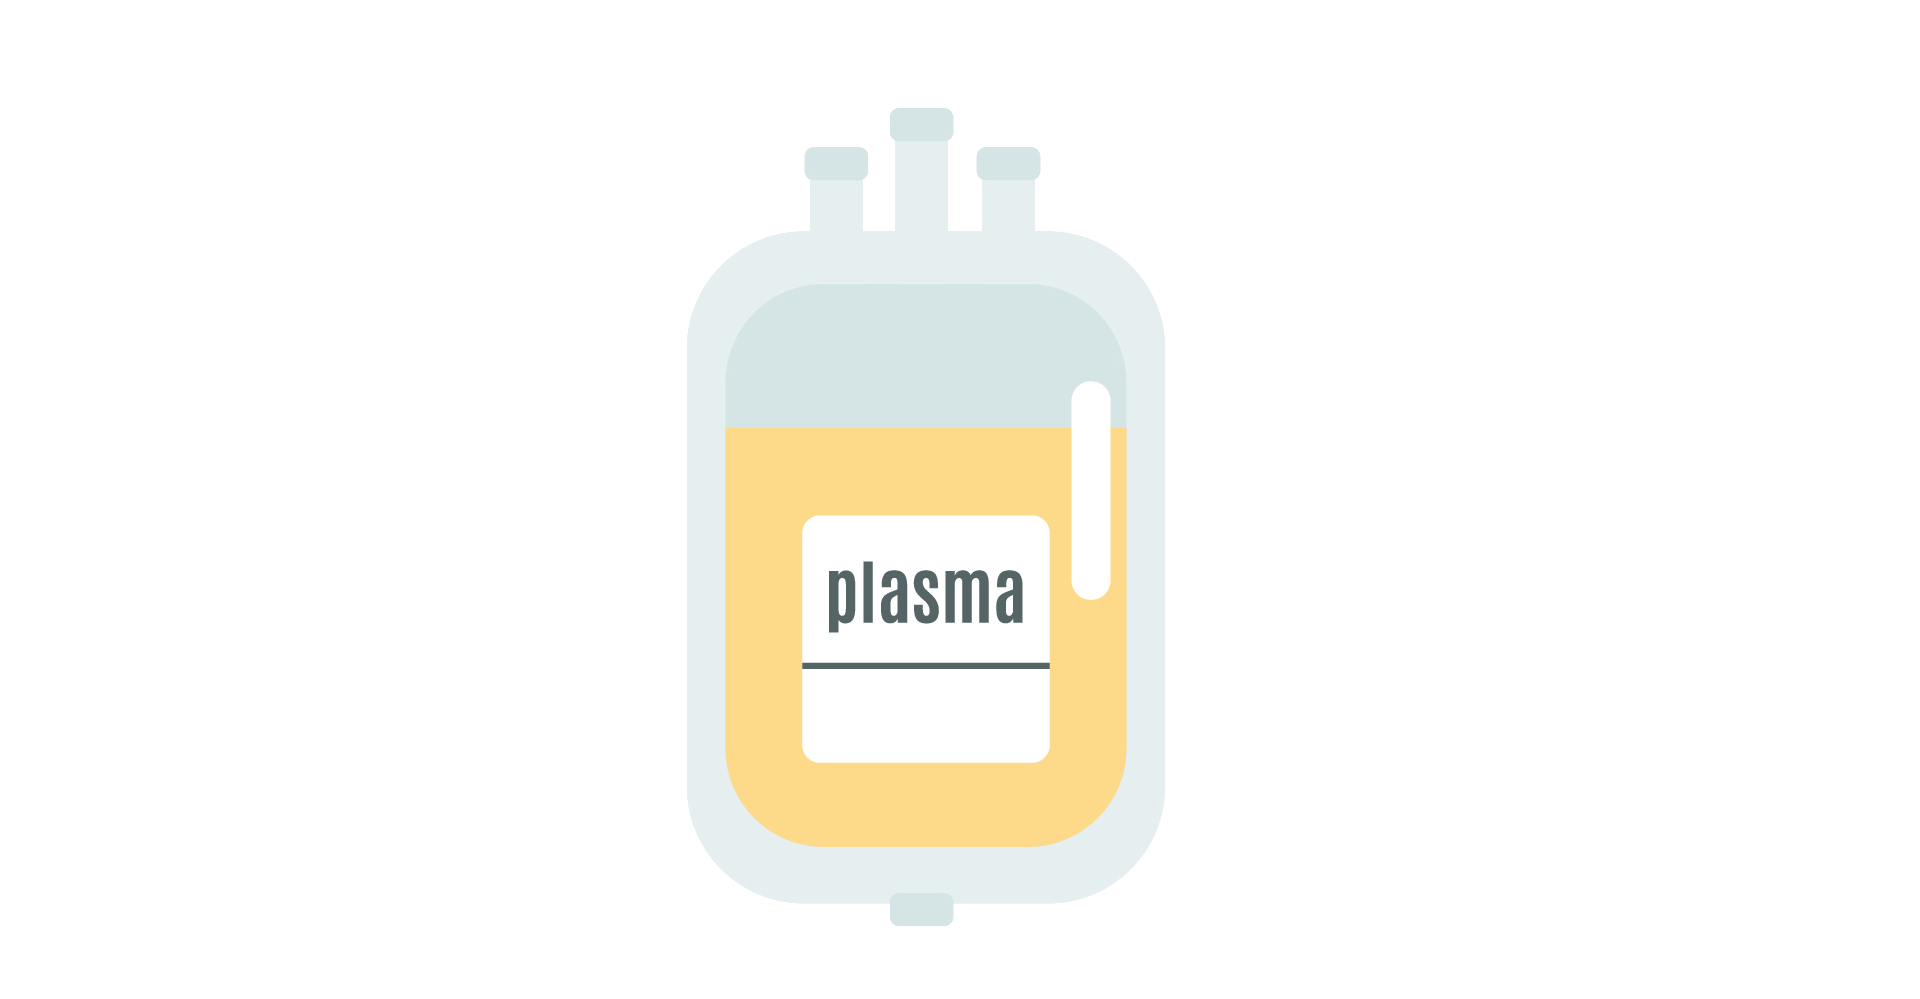 blood-plasma